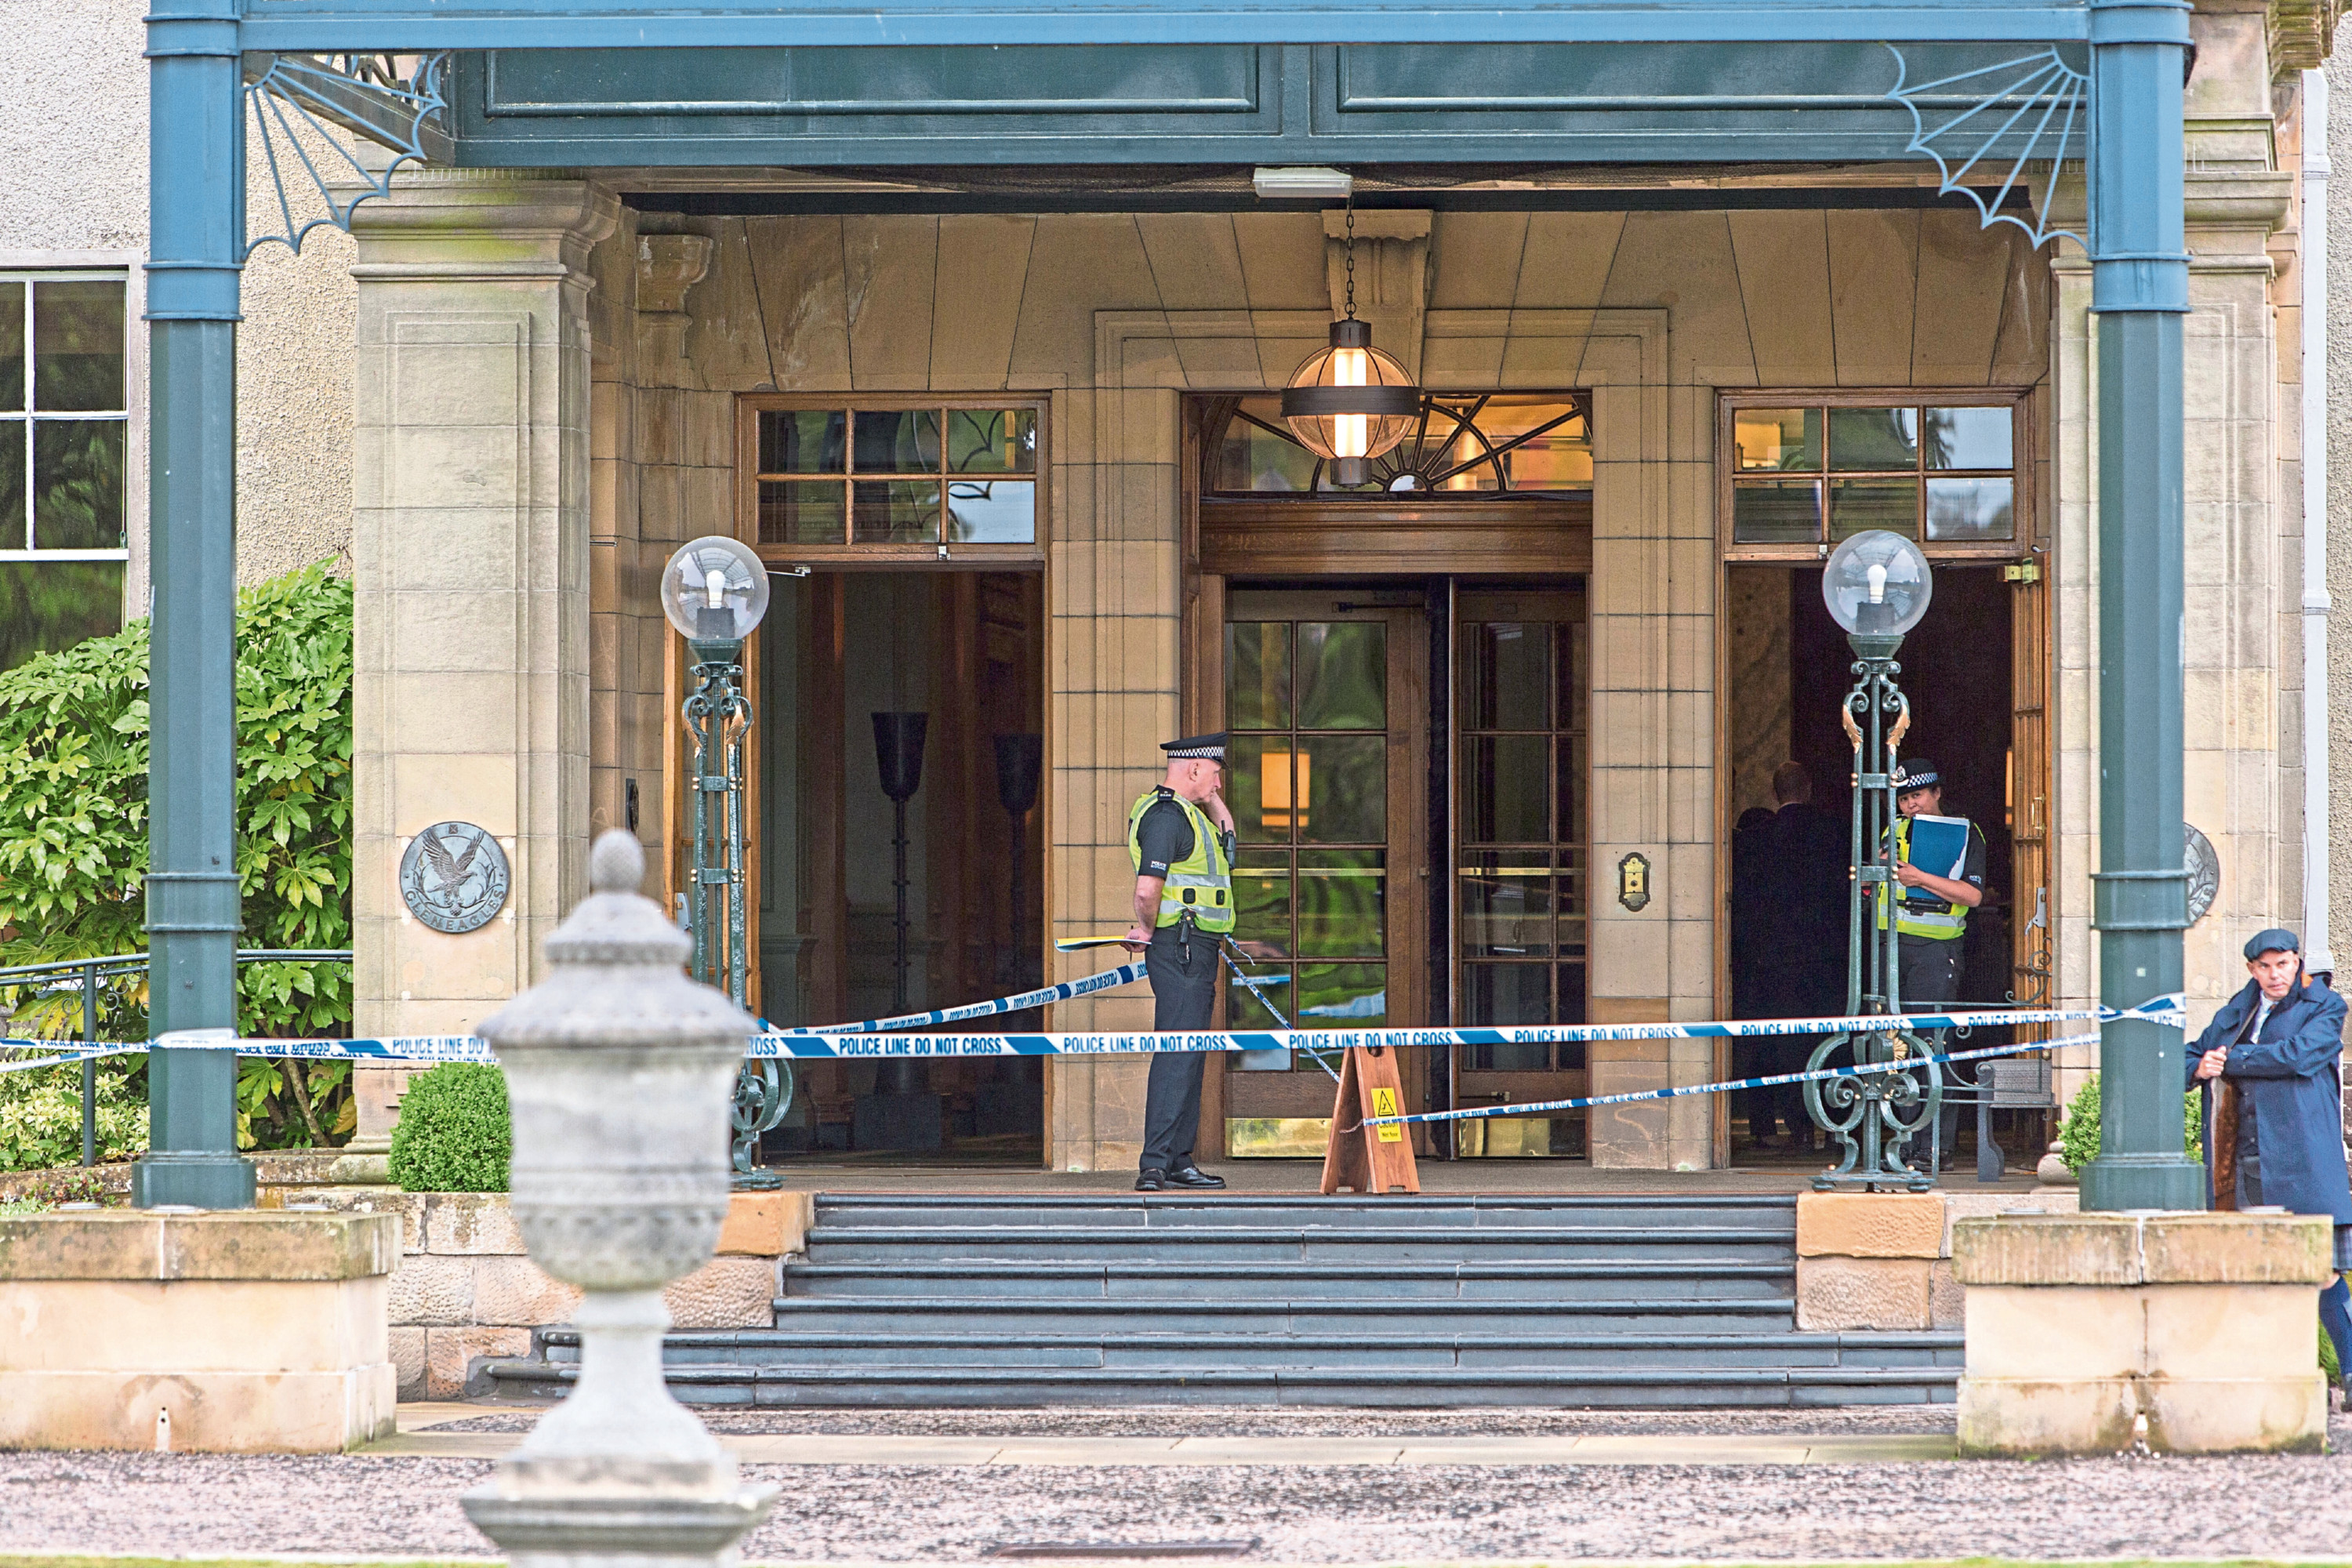 The scene at the Gleneagles Hotel in June 2017.